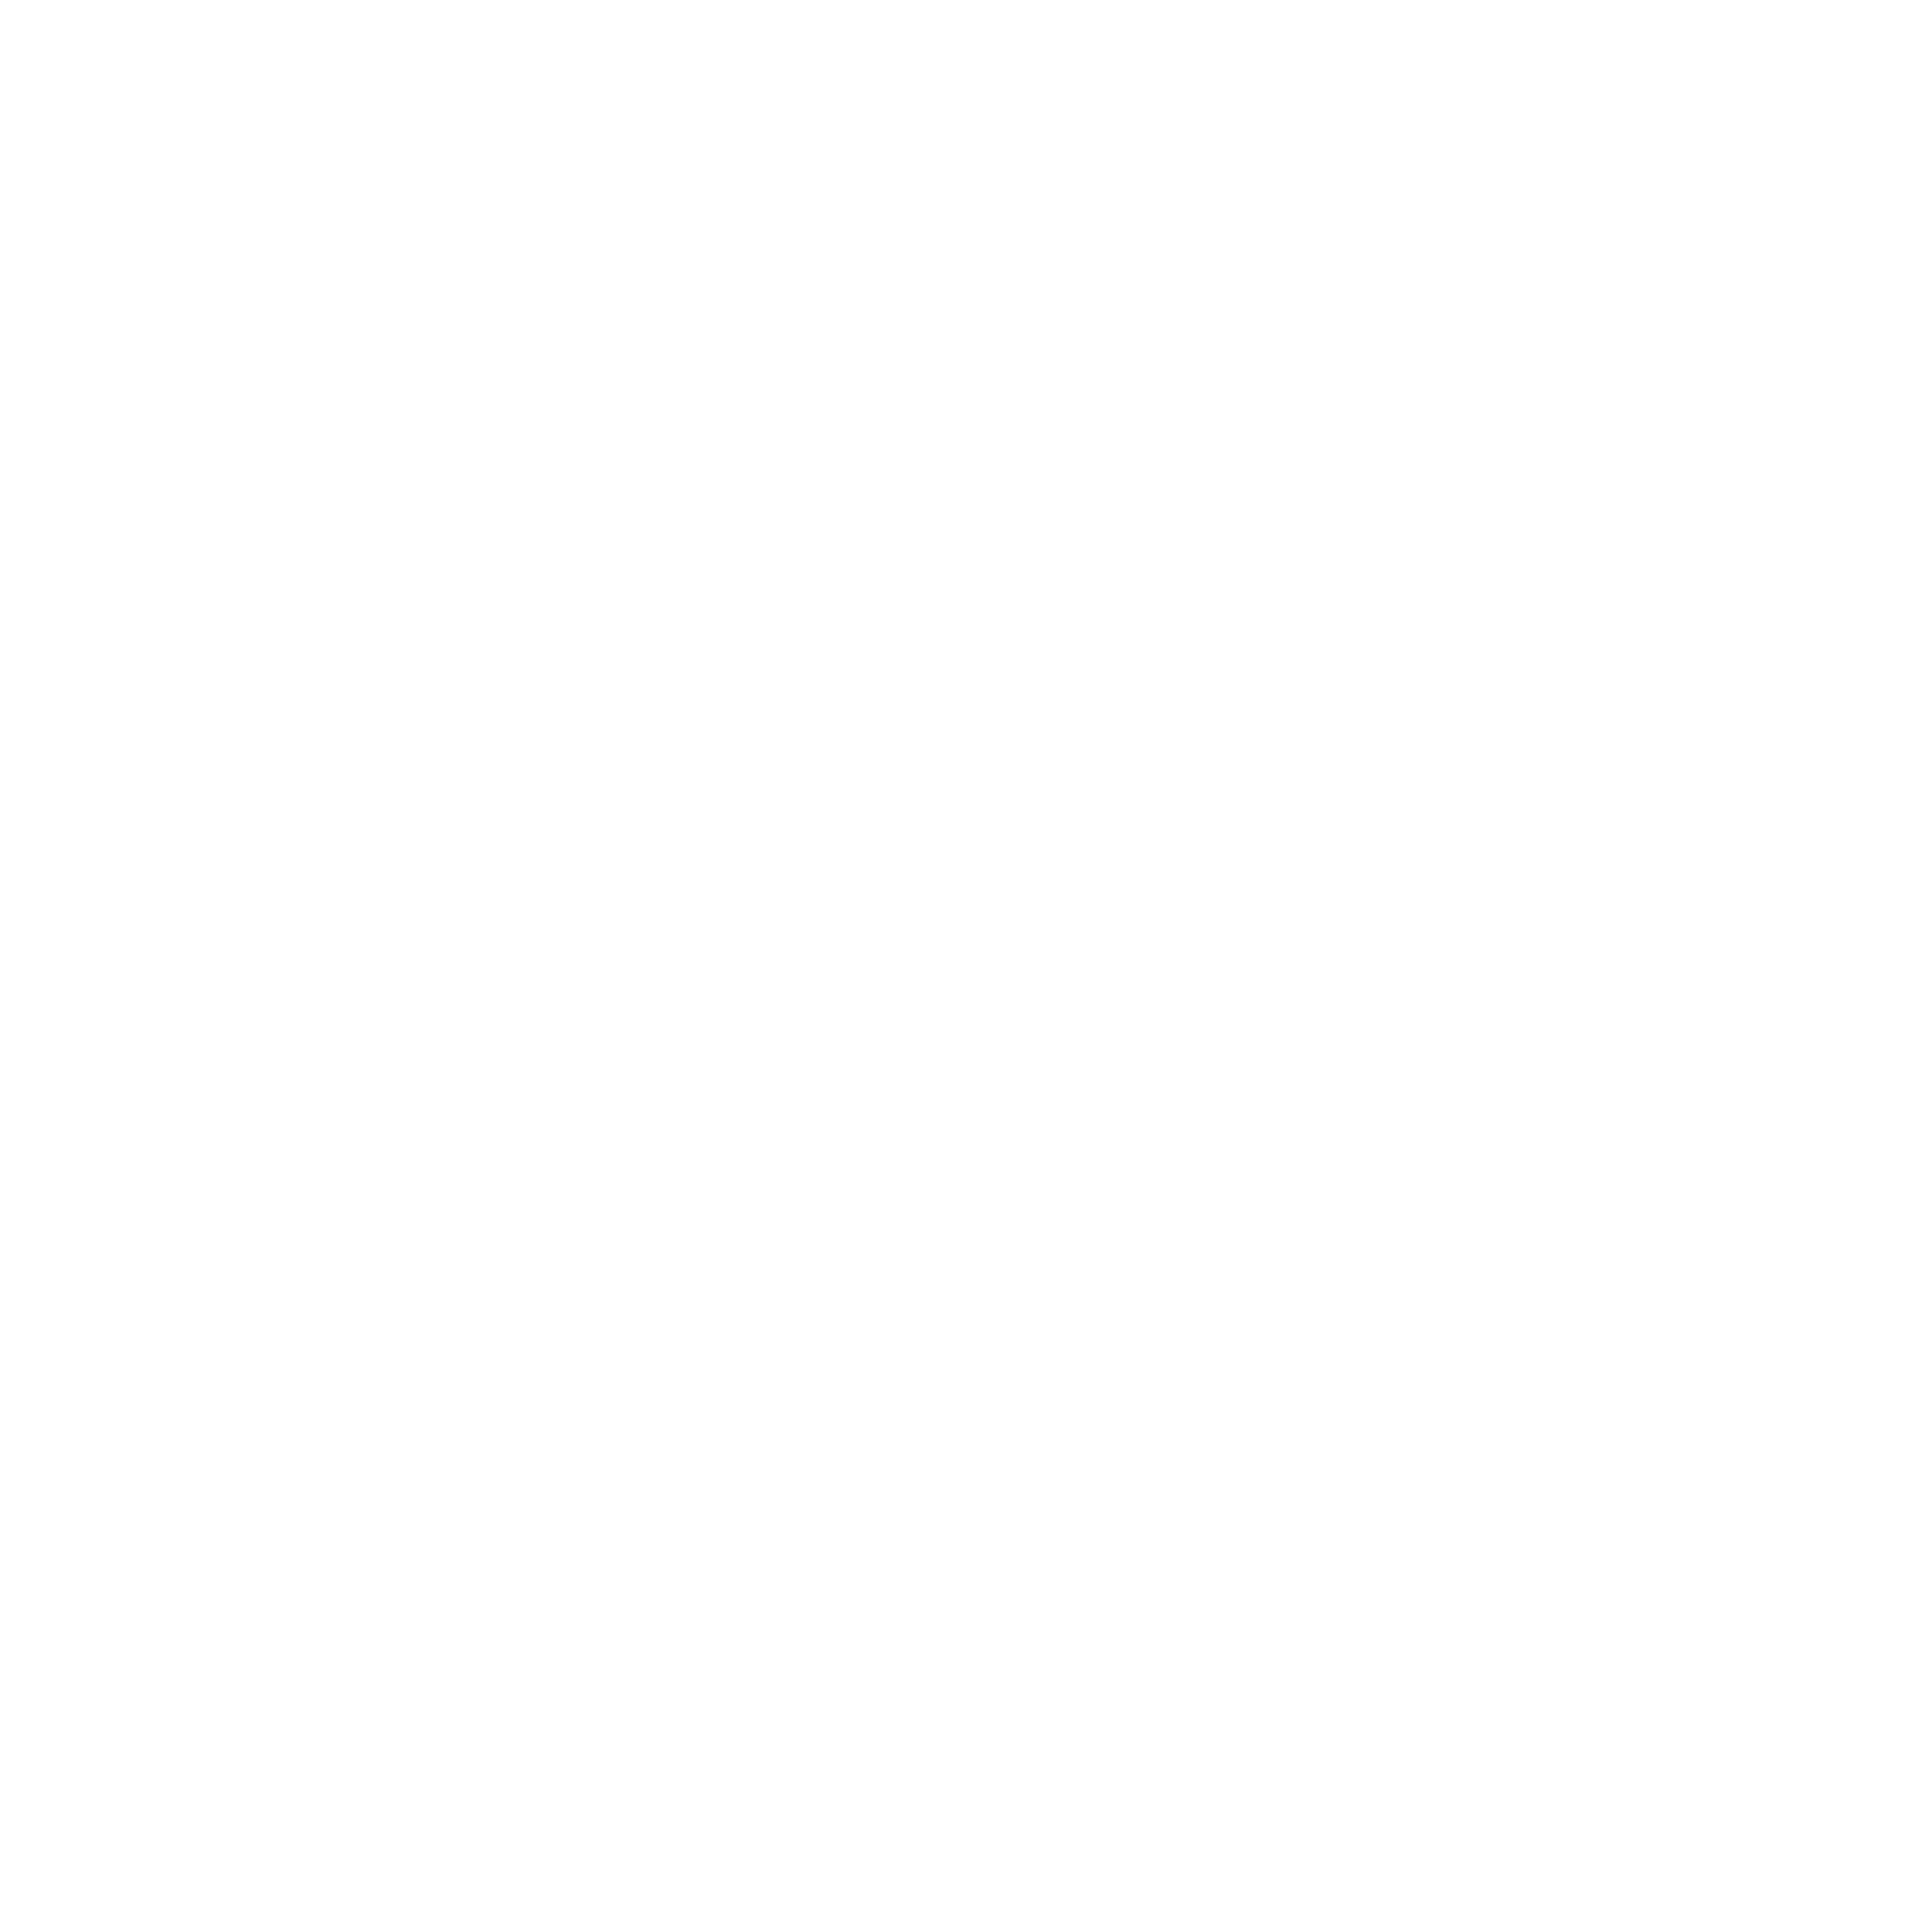 minnegoed-wines-logo-wit